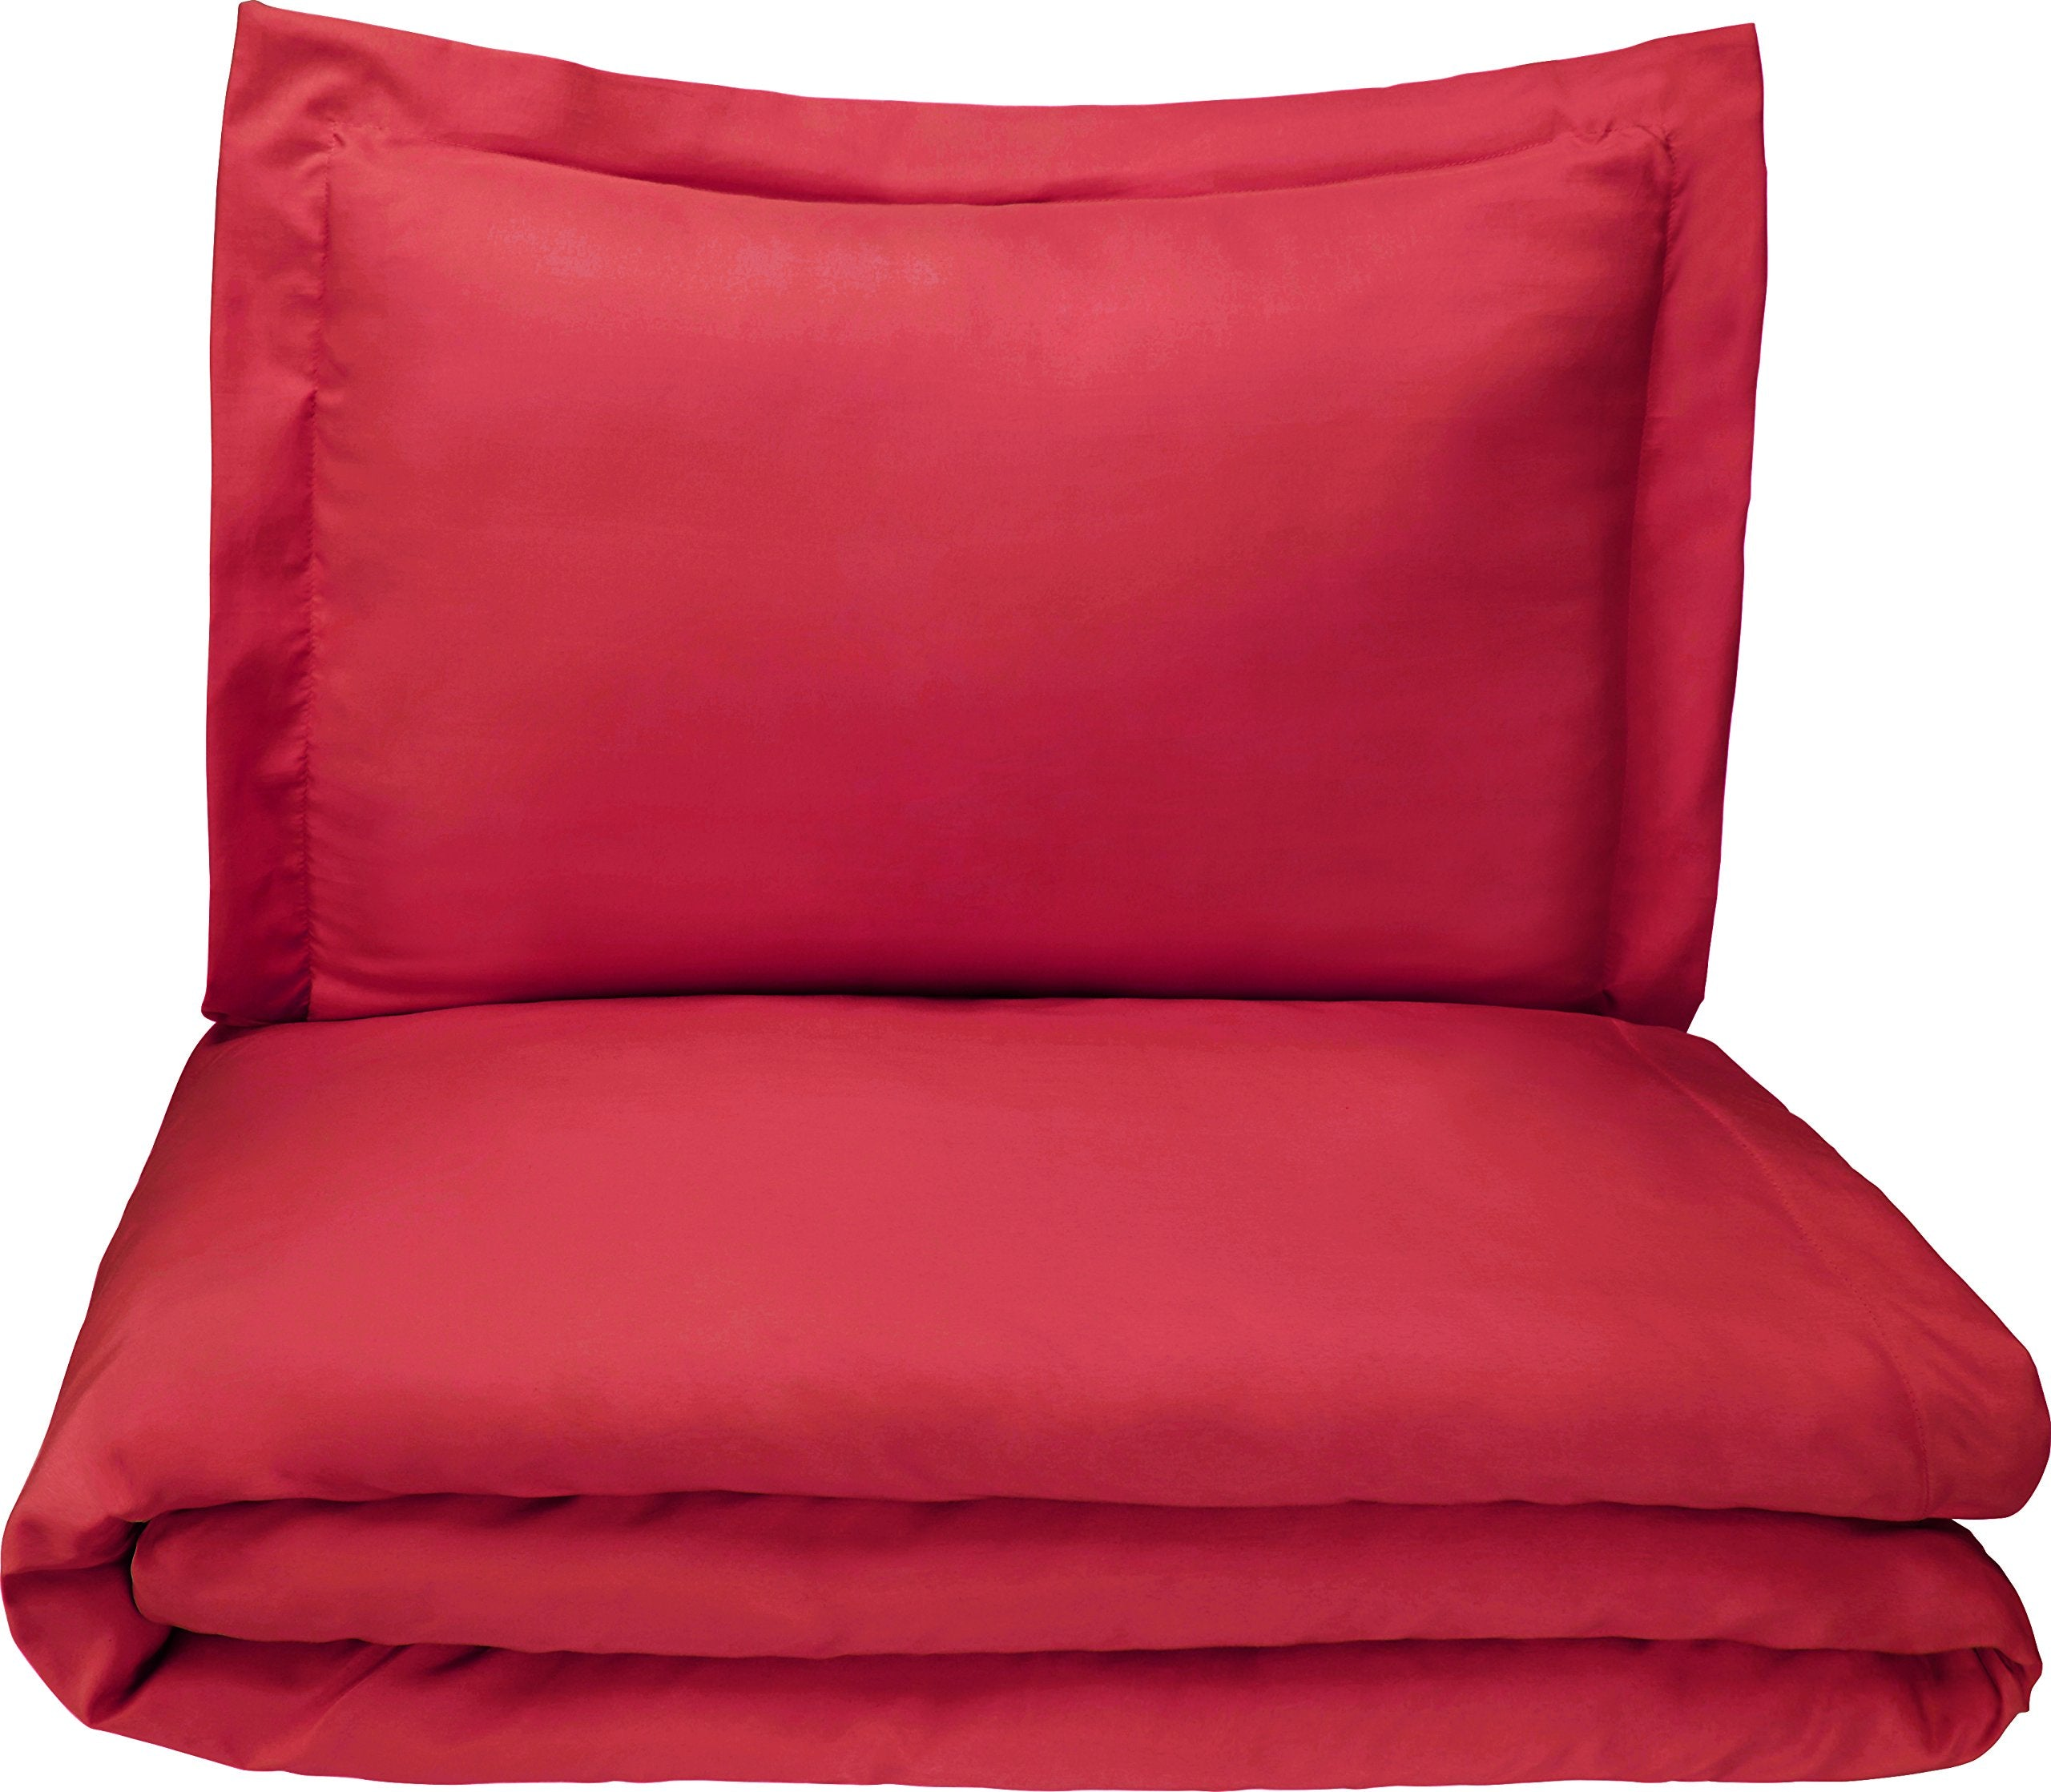 Microfiber Duvet Cover Set - Lightweight and Soft - Twin/Twin XL, Burgundy